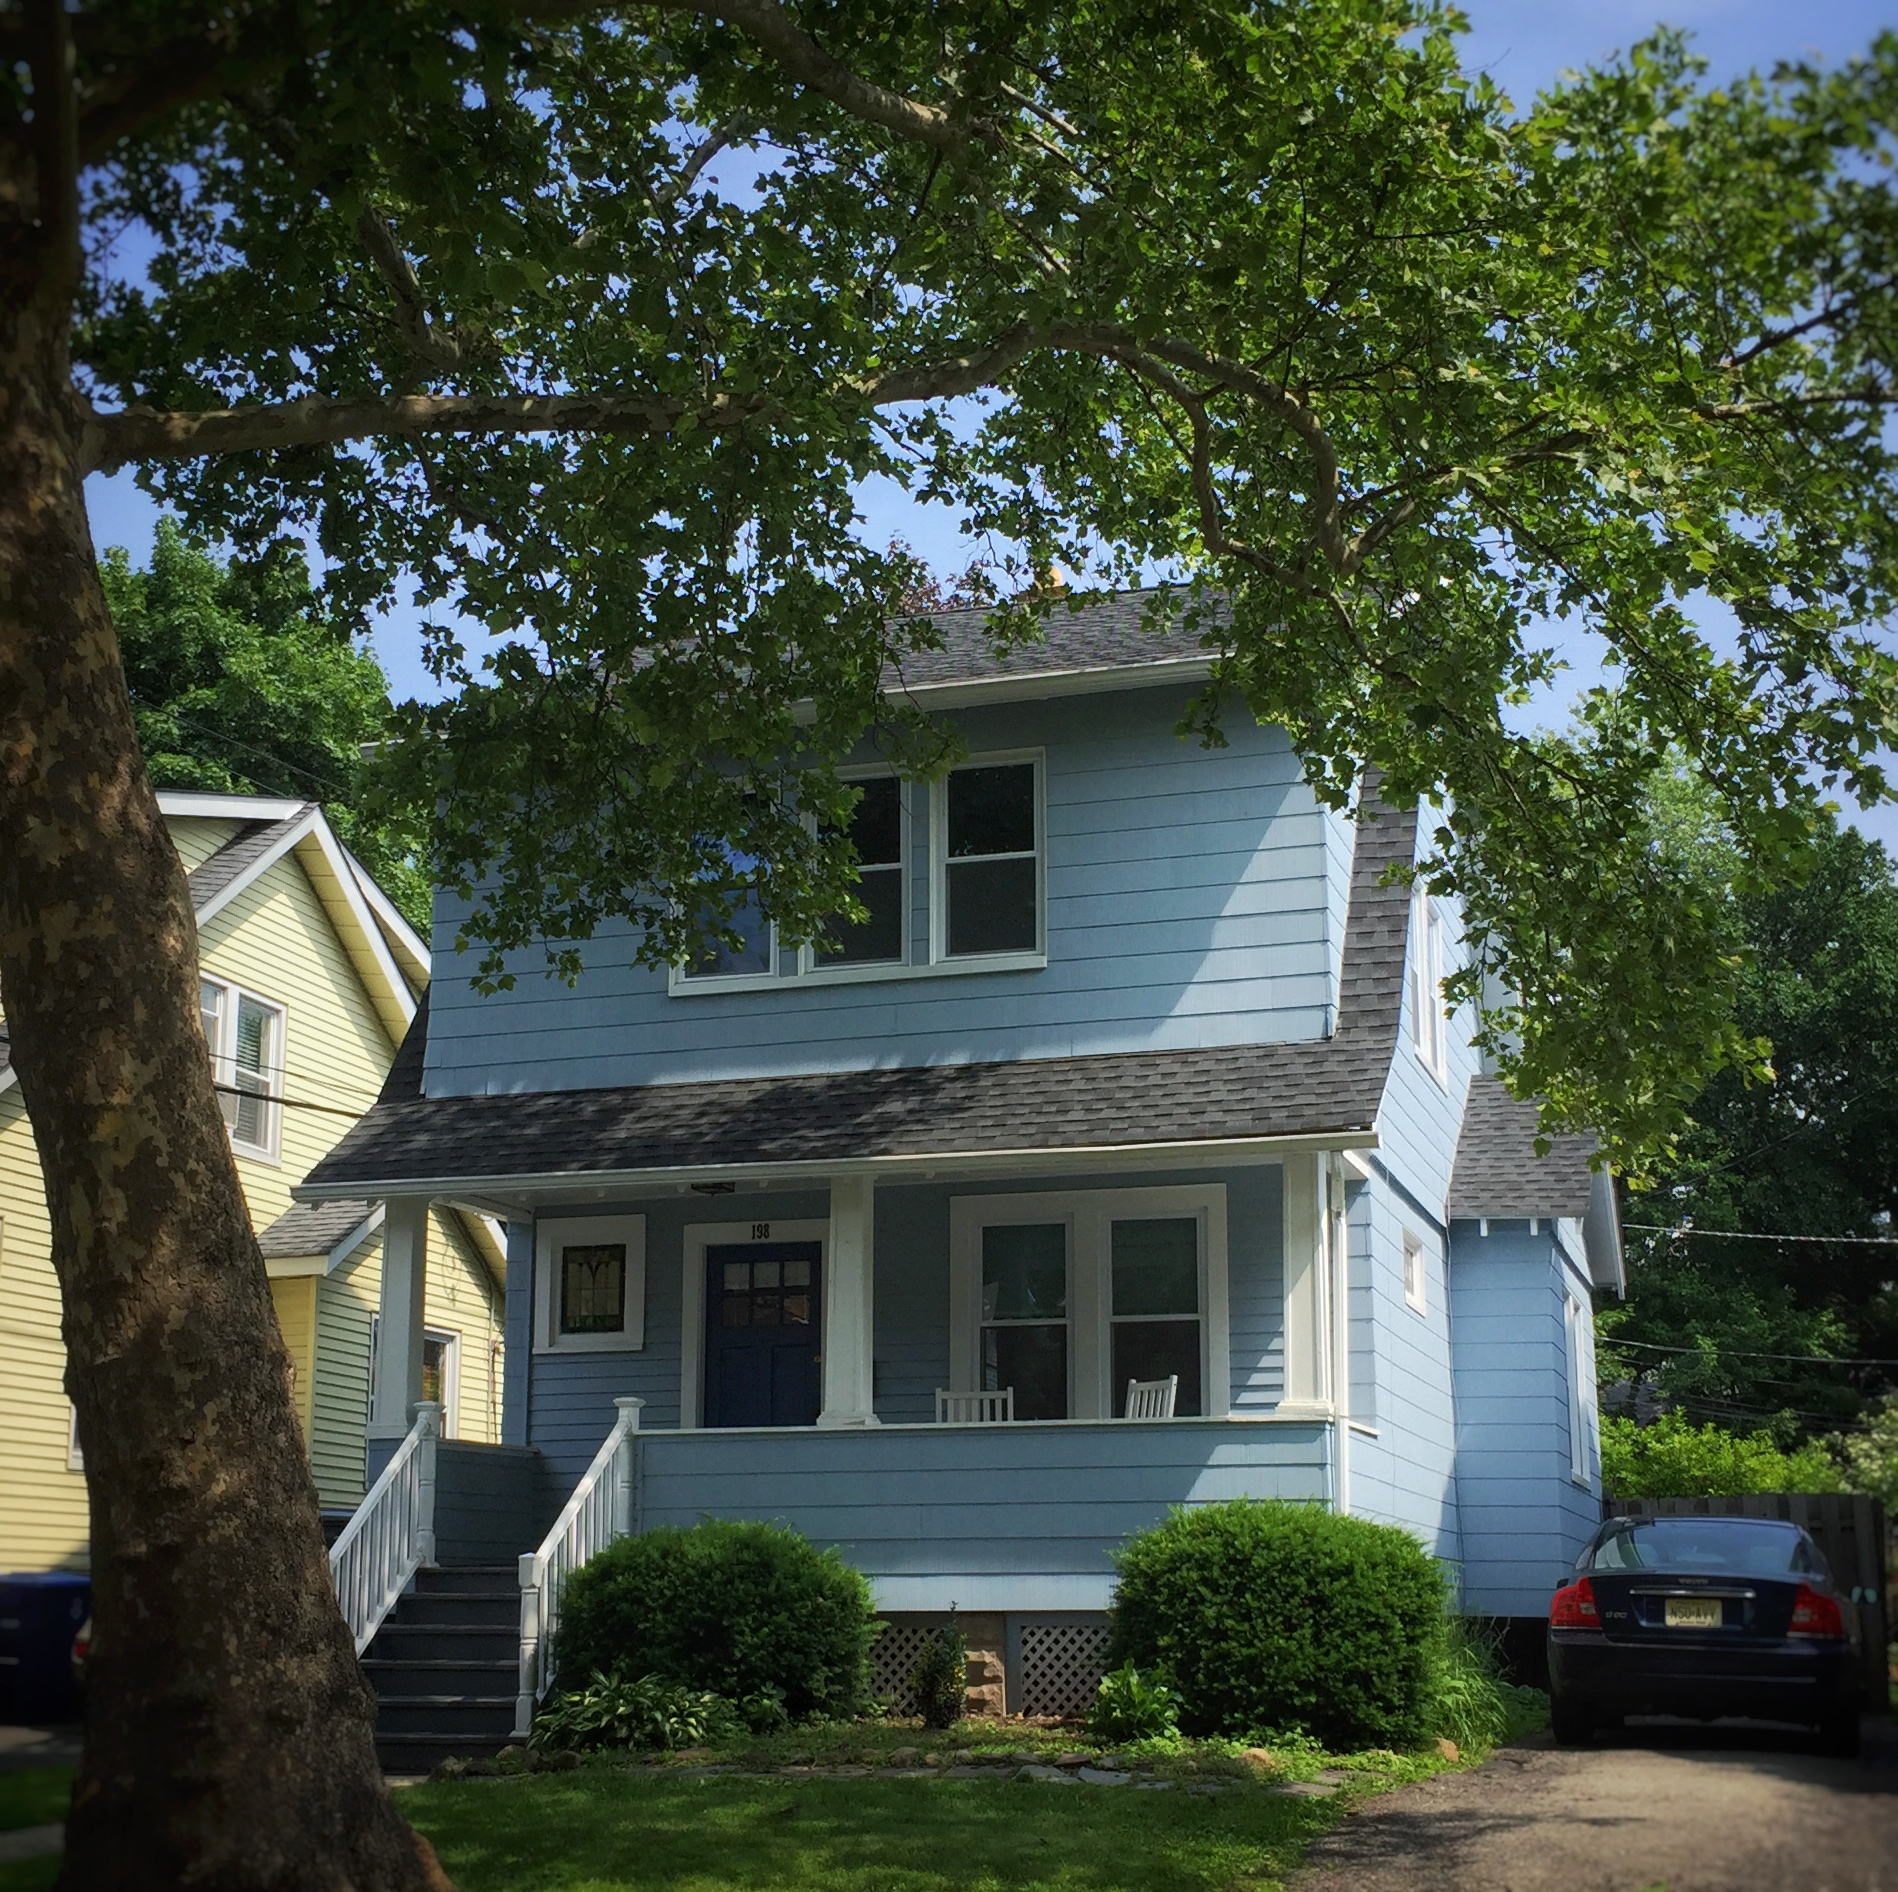 Our humble abode in South Orange, New Jersey